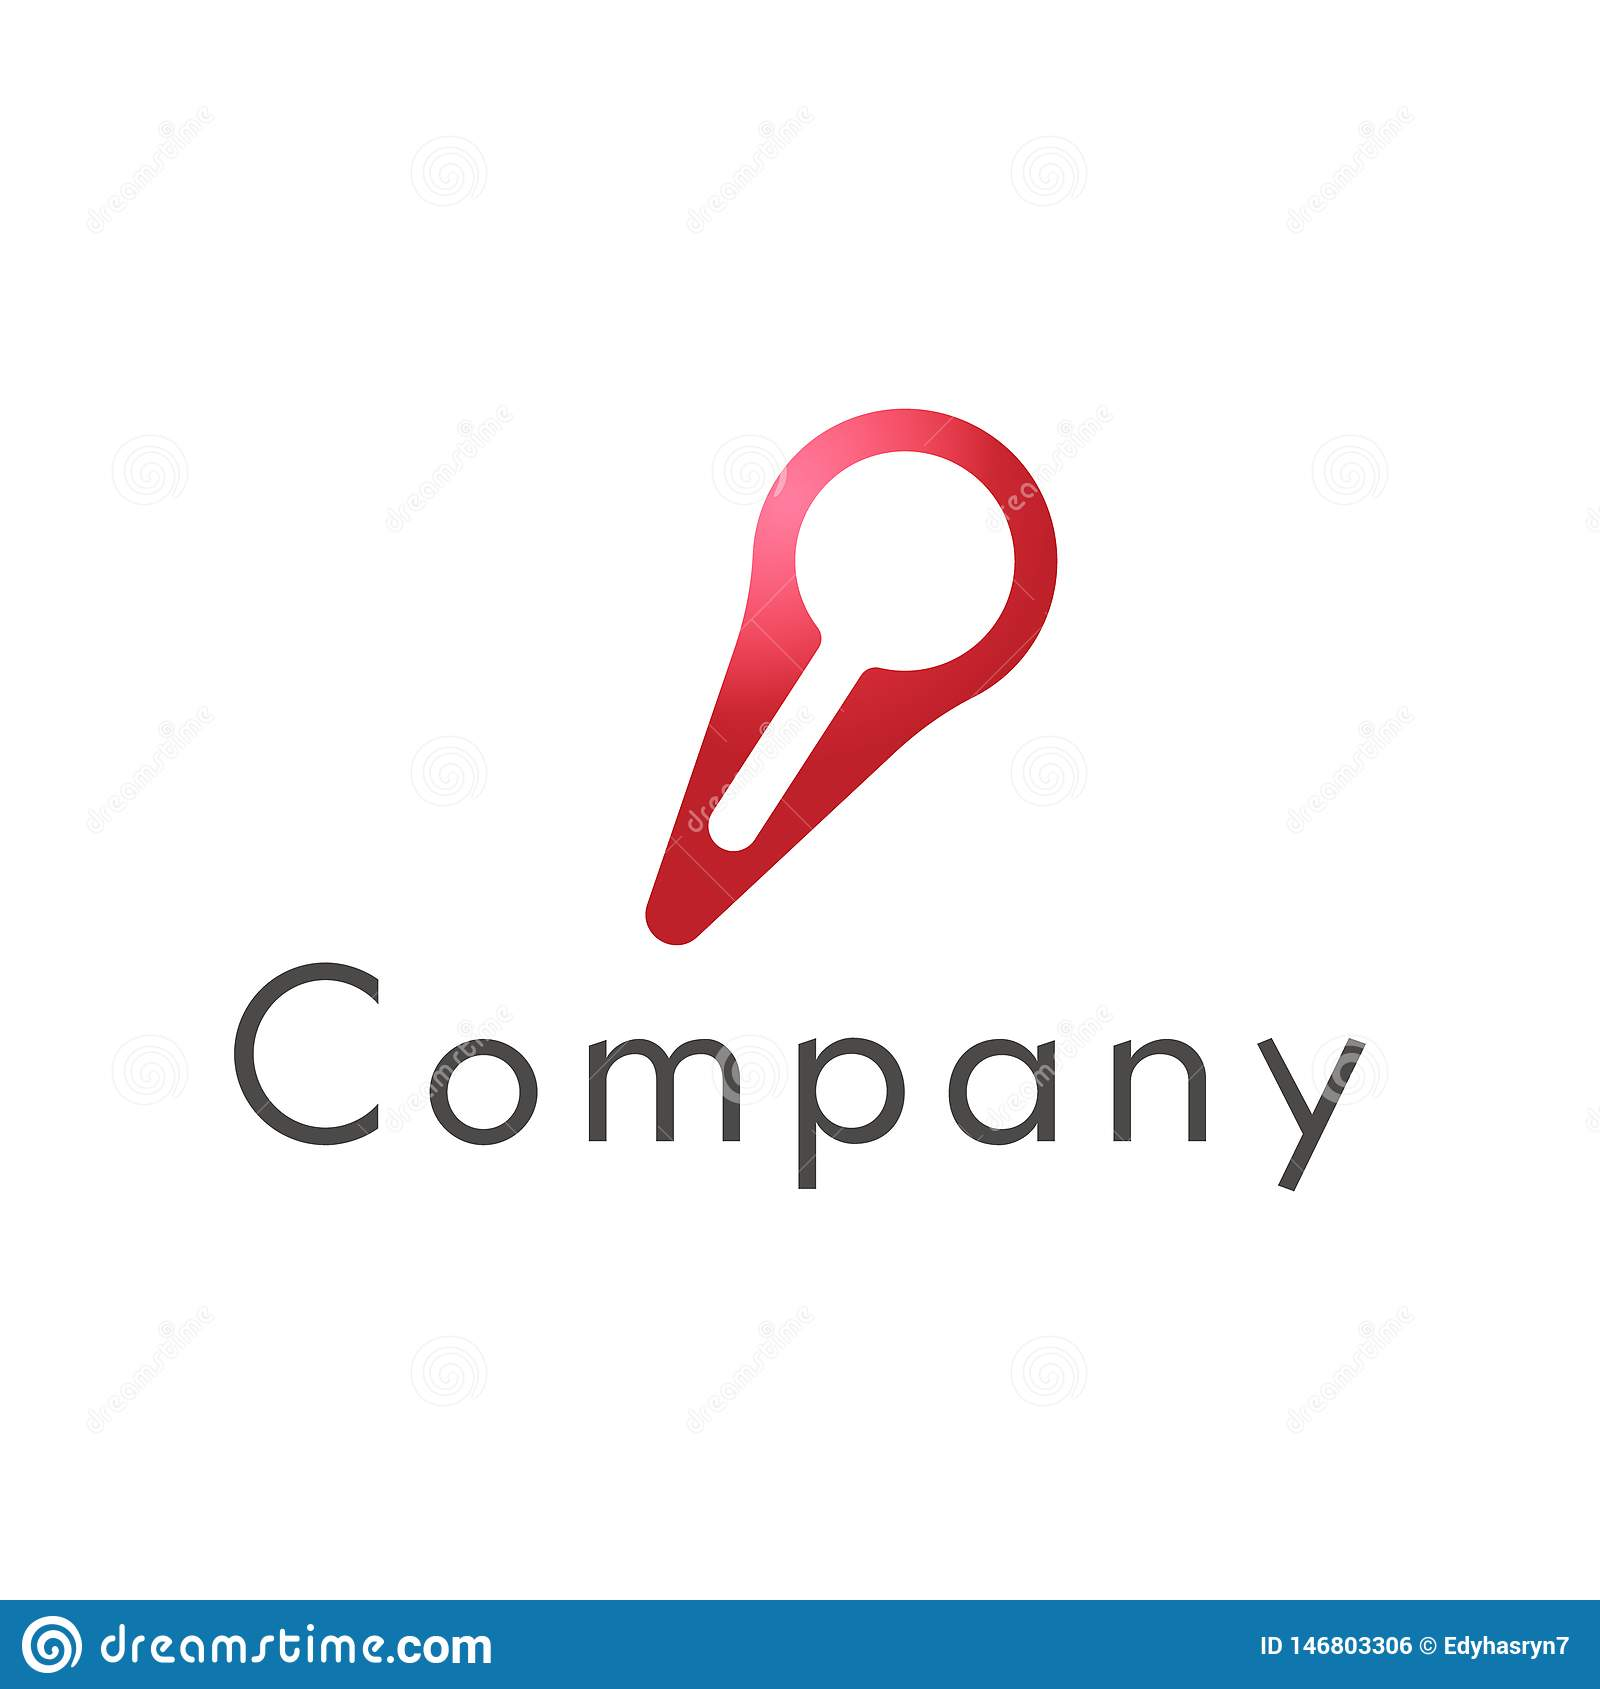 A magnifying glass logo